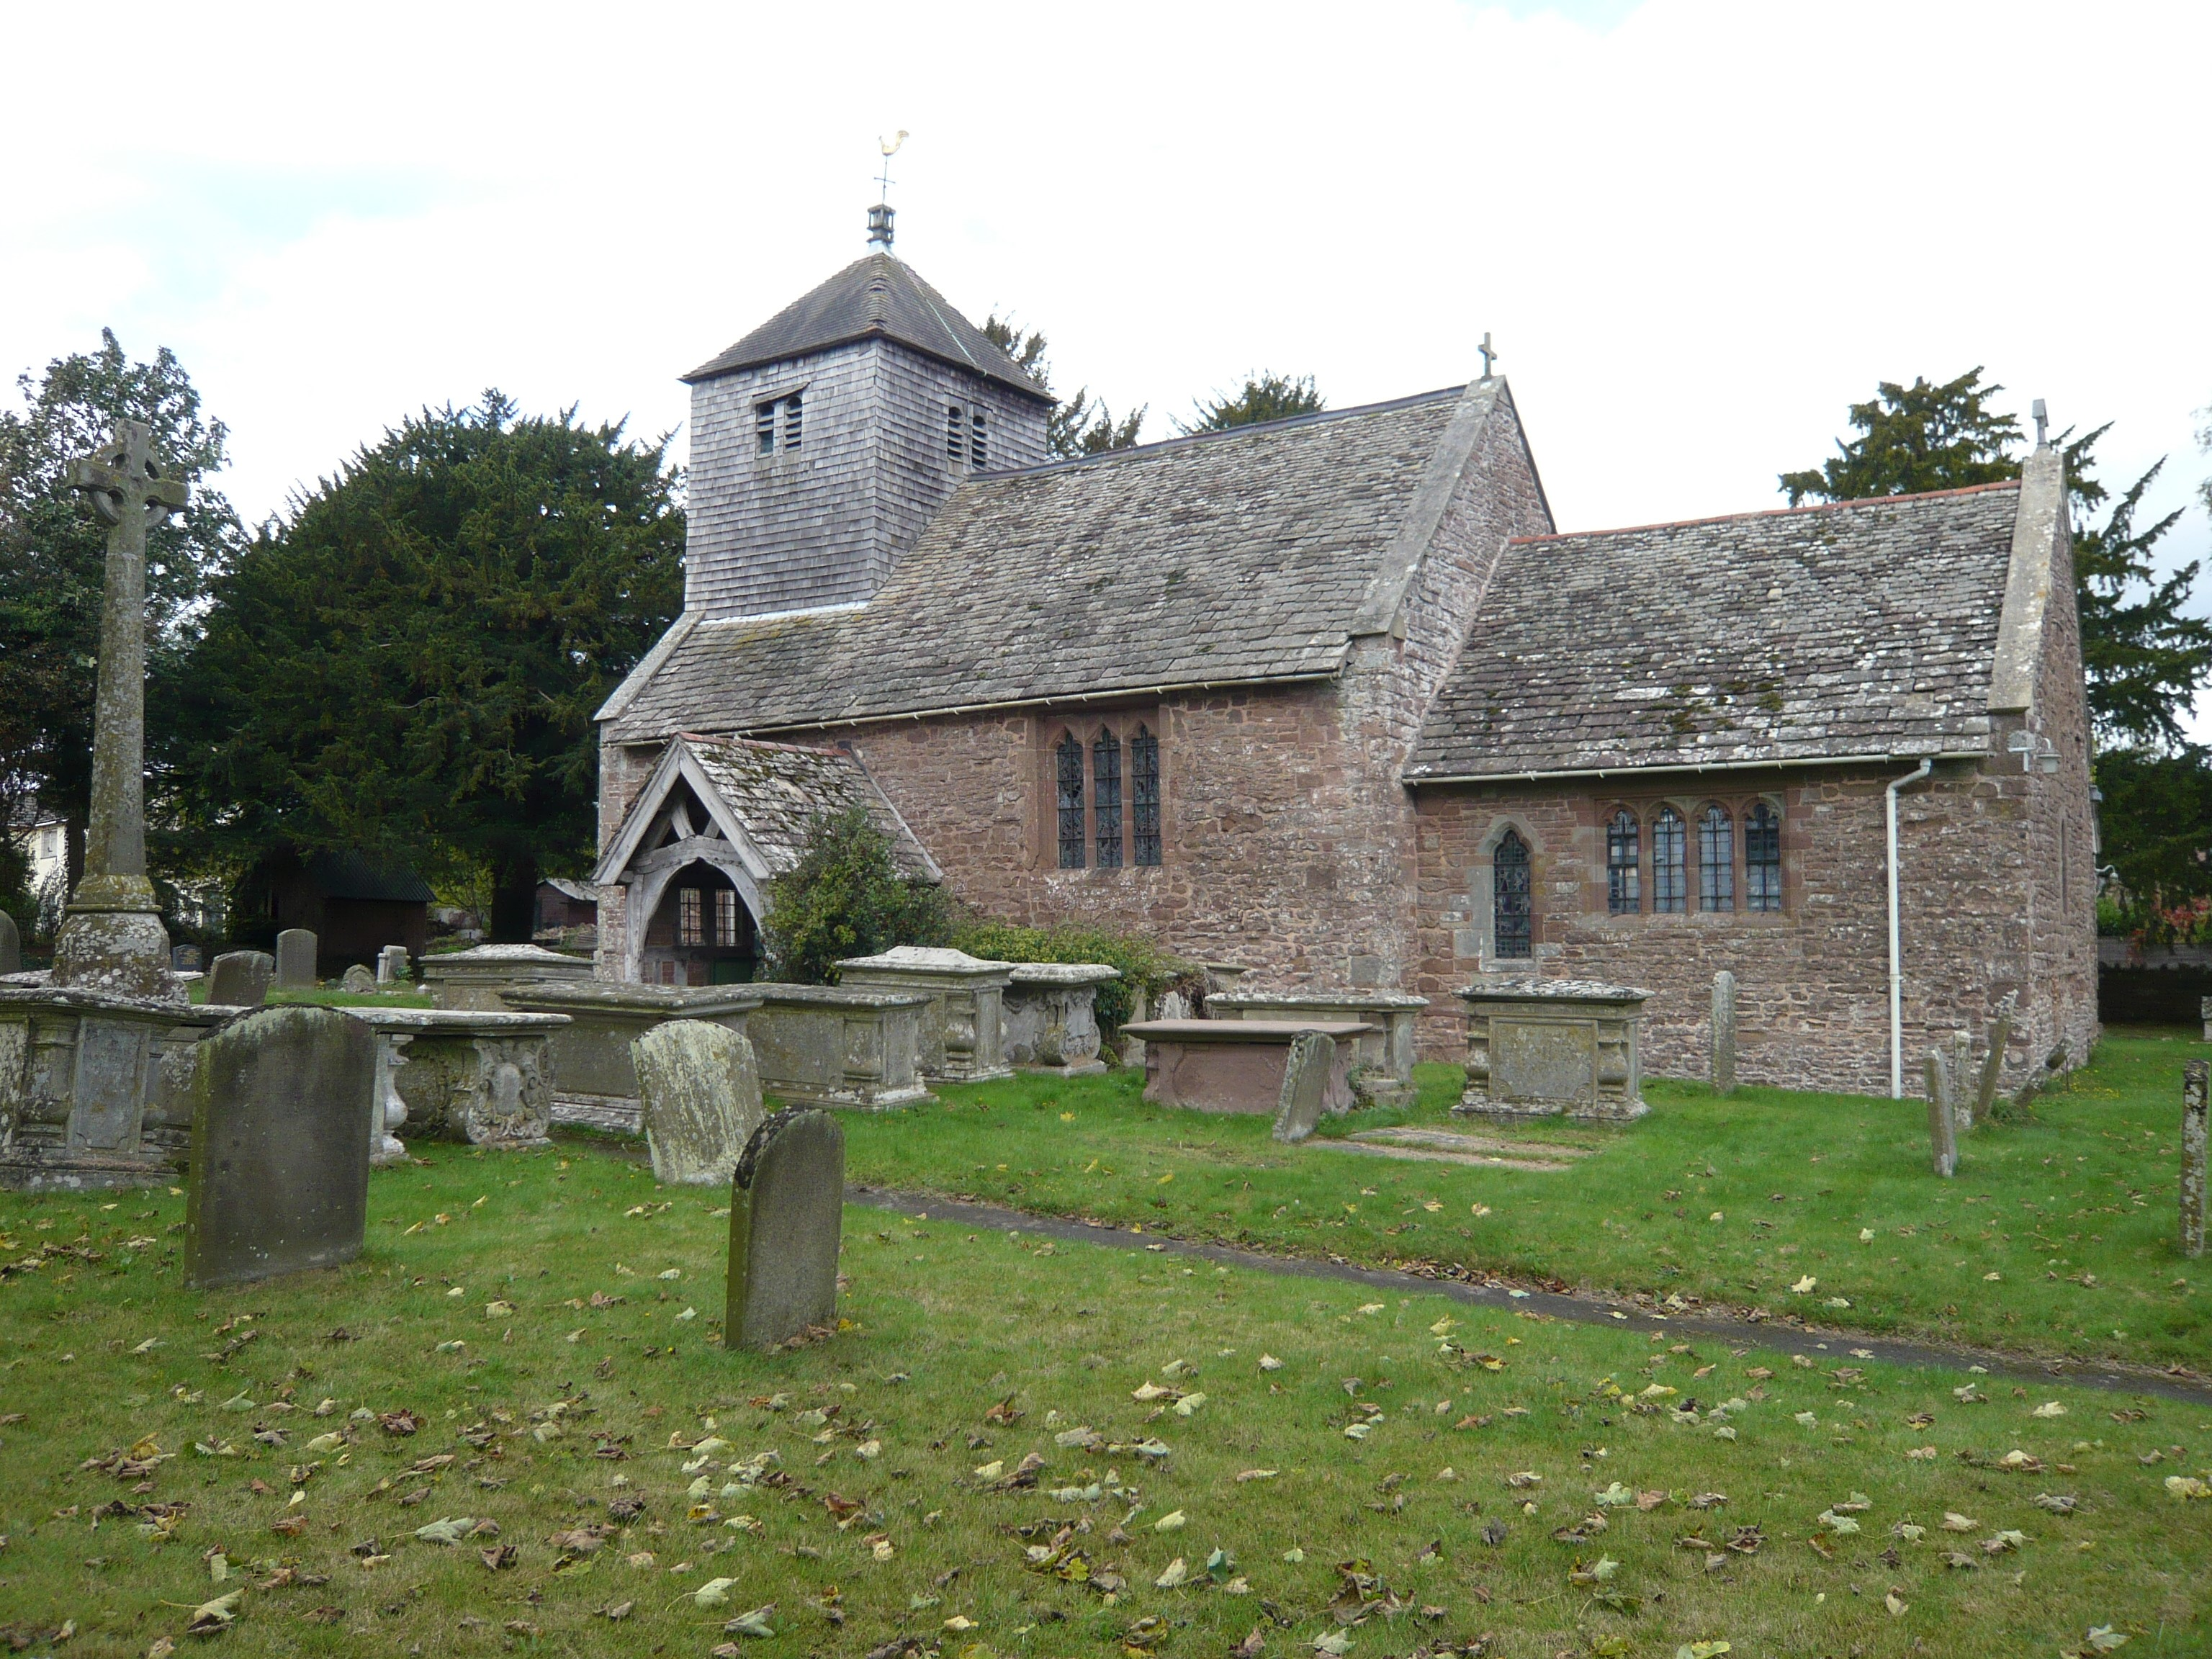 BRAMPTON ABBOTTS, St Michael and All Angels